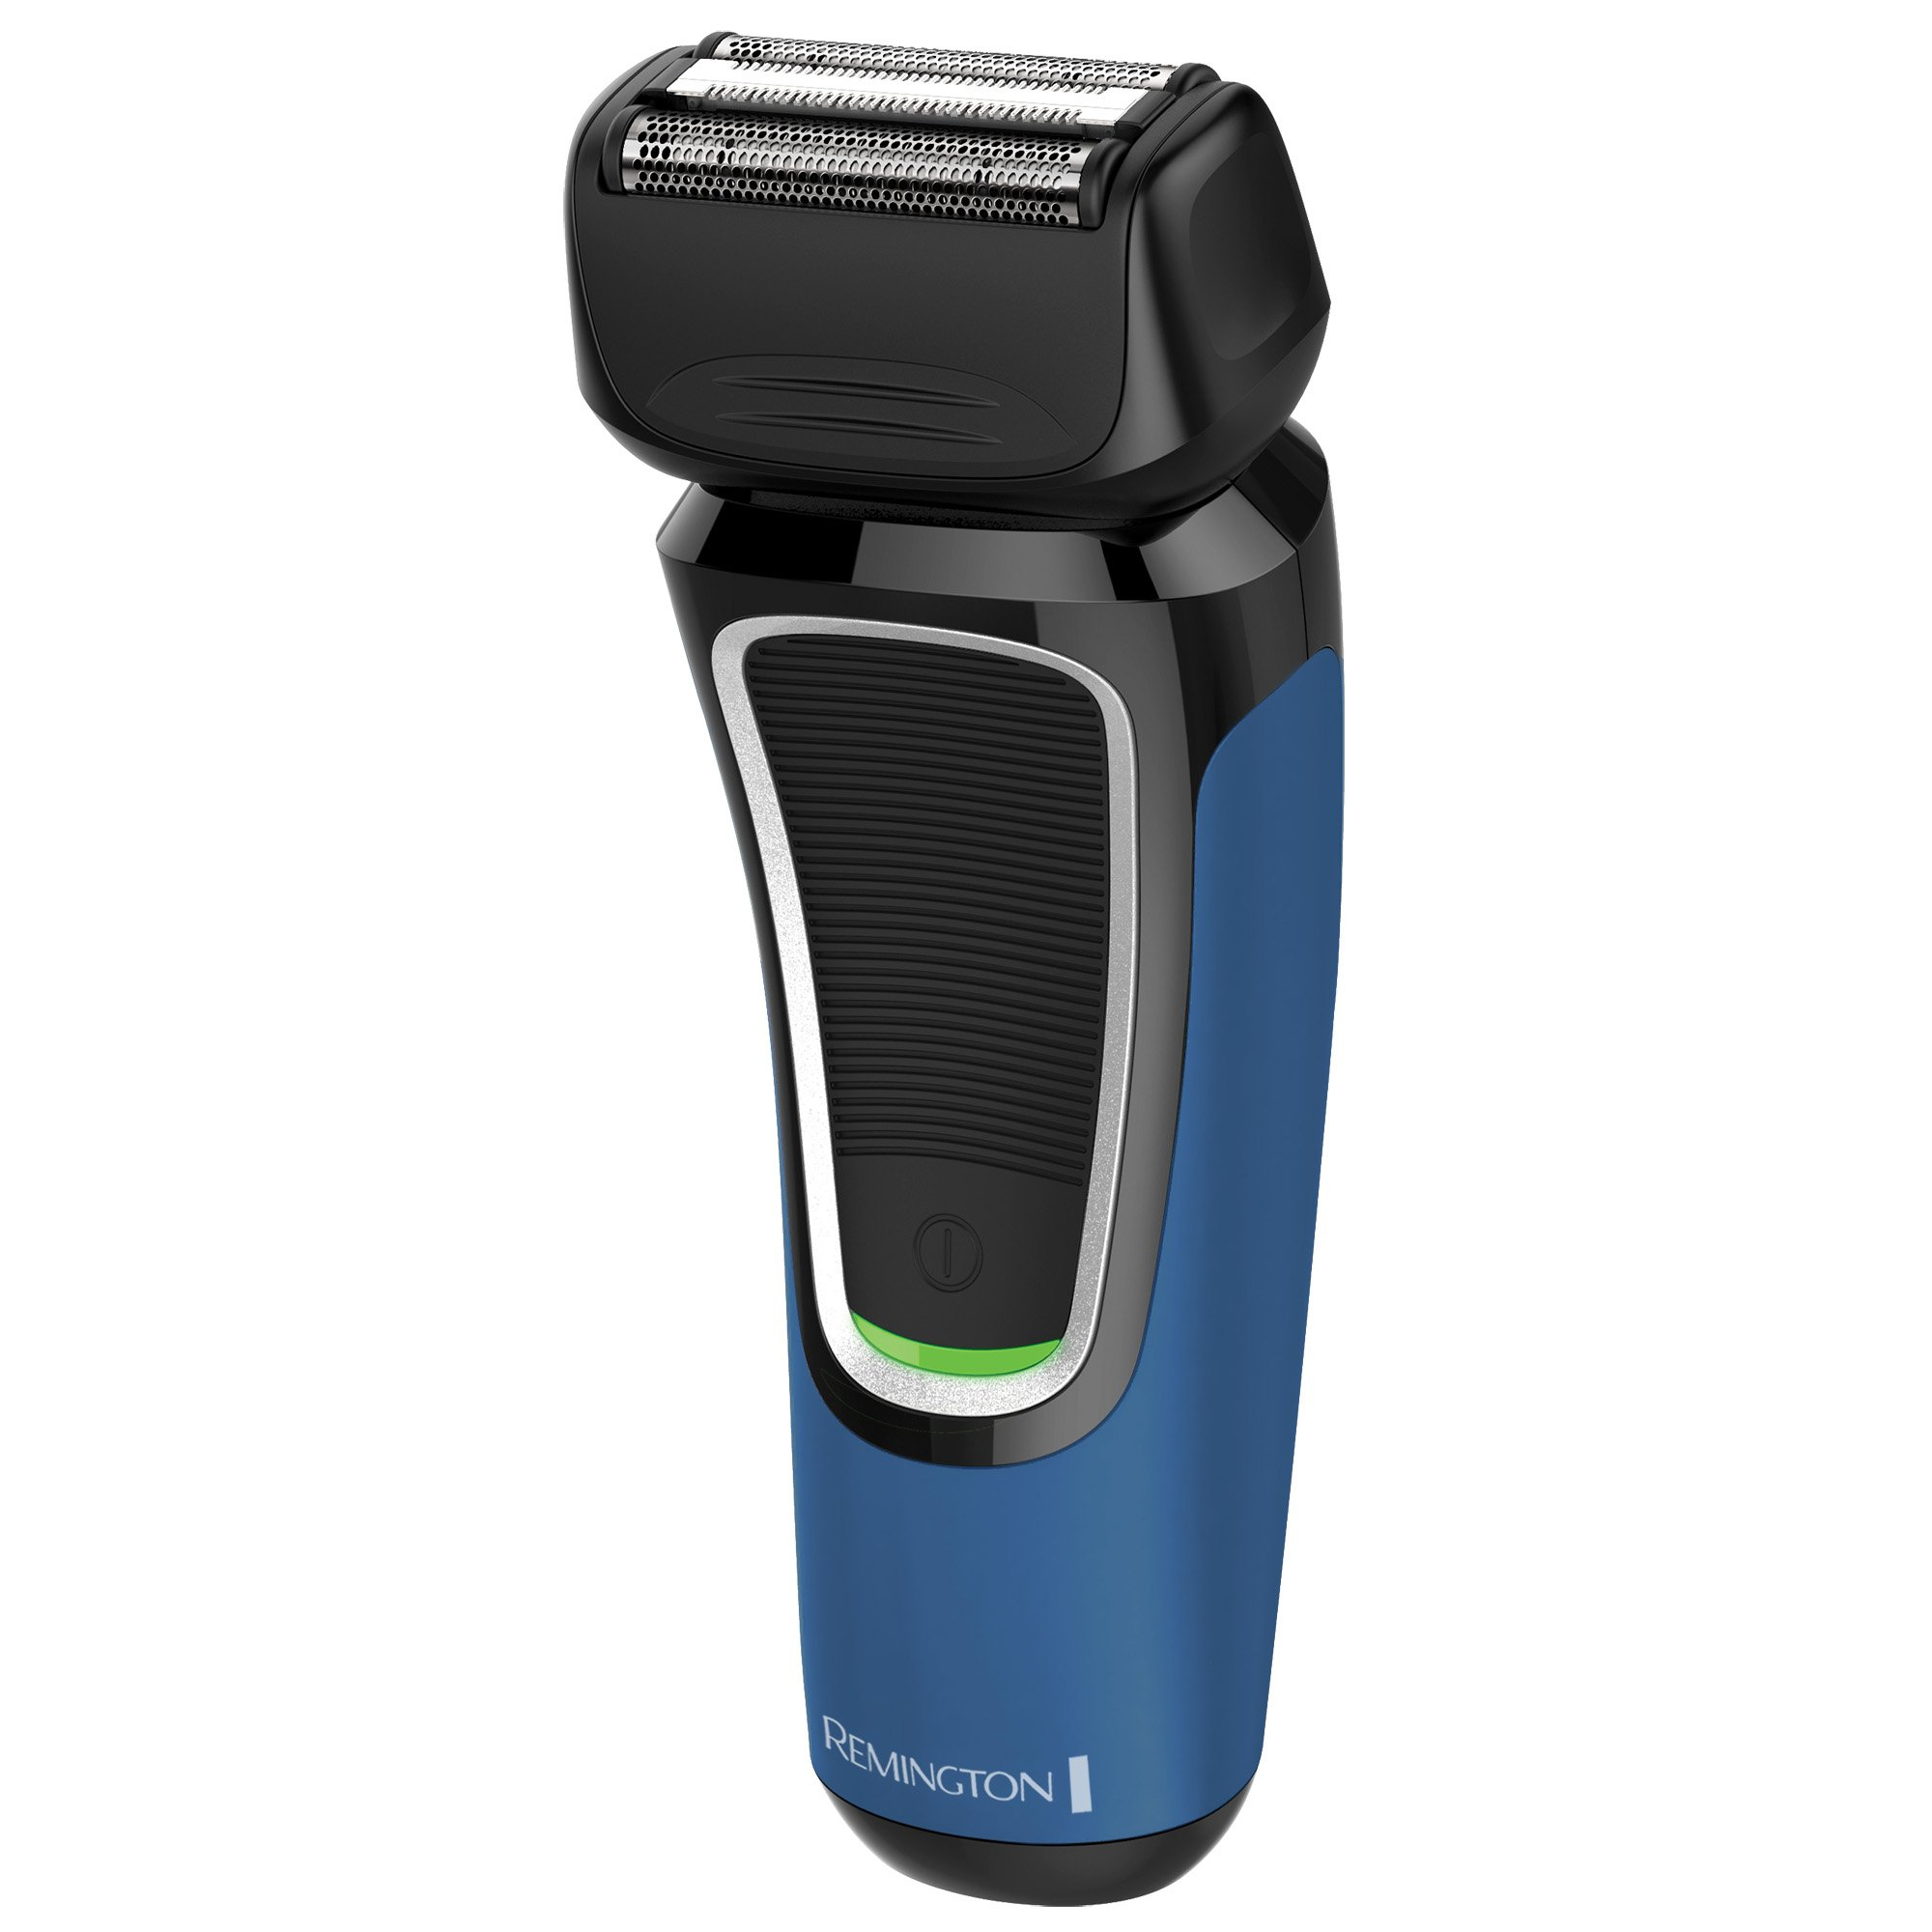 Remington PF7600 F8 Comfort Series Wet & Dry Foil Shaver, Men's Electric Razor, Electric Shaver